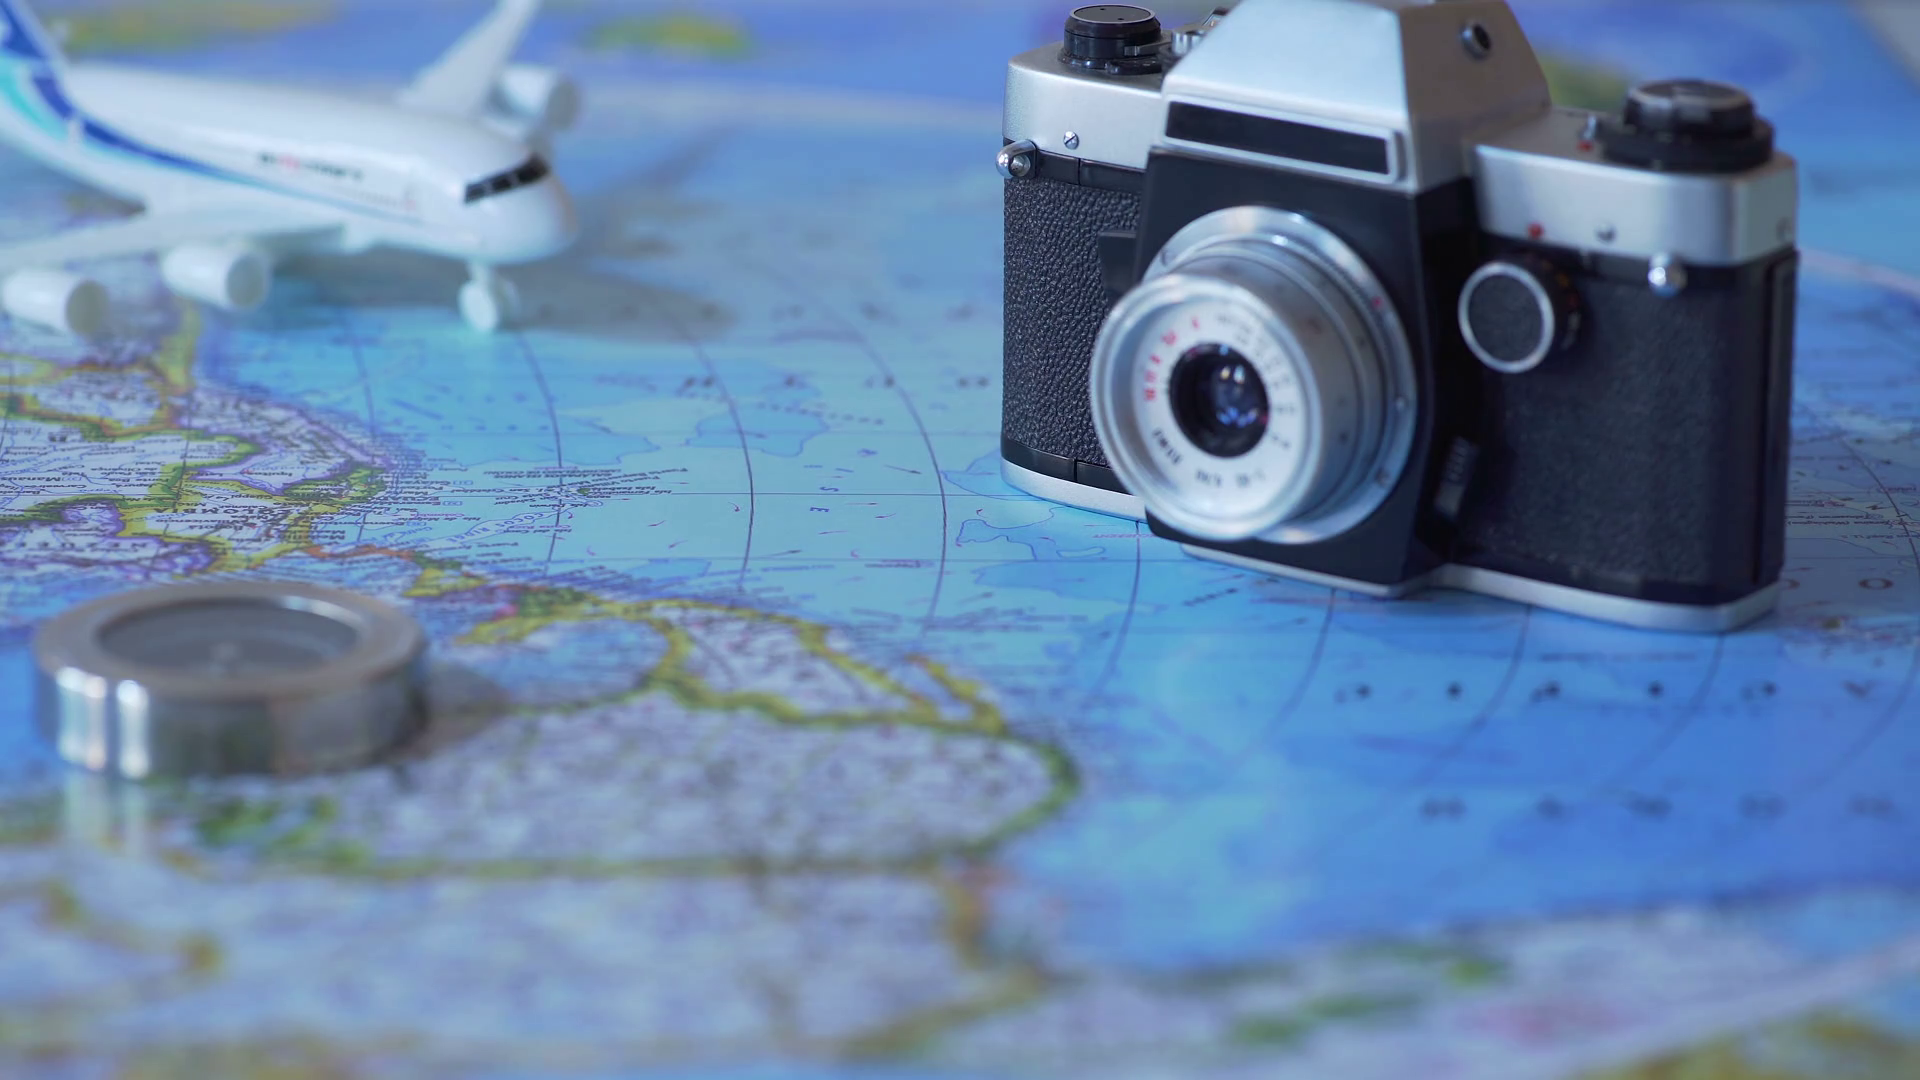 travel accessories and toy plane on world map background vacation planning hsgzbn75ux thumbnail full01 b16cd